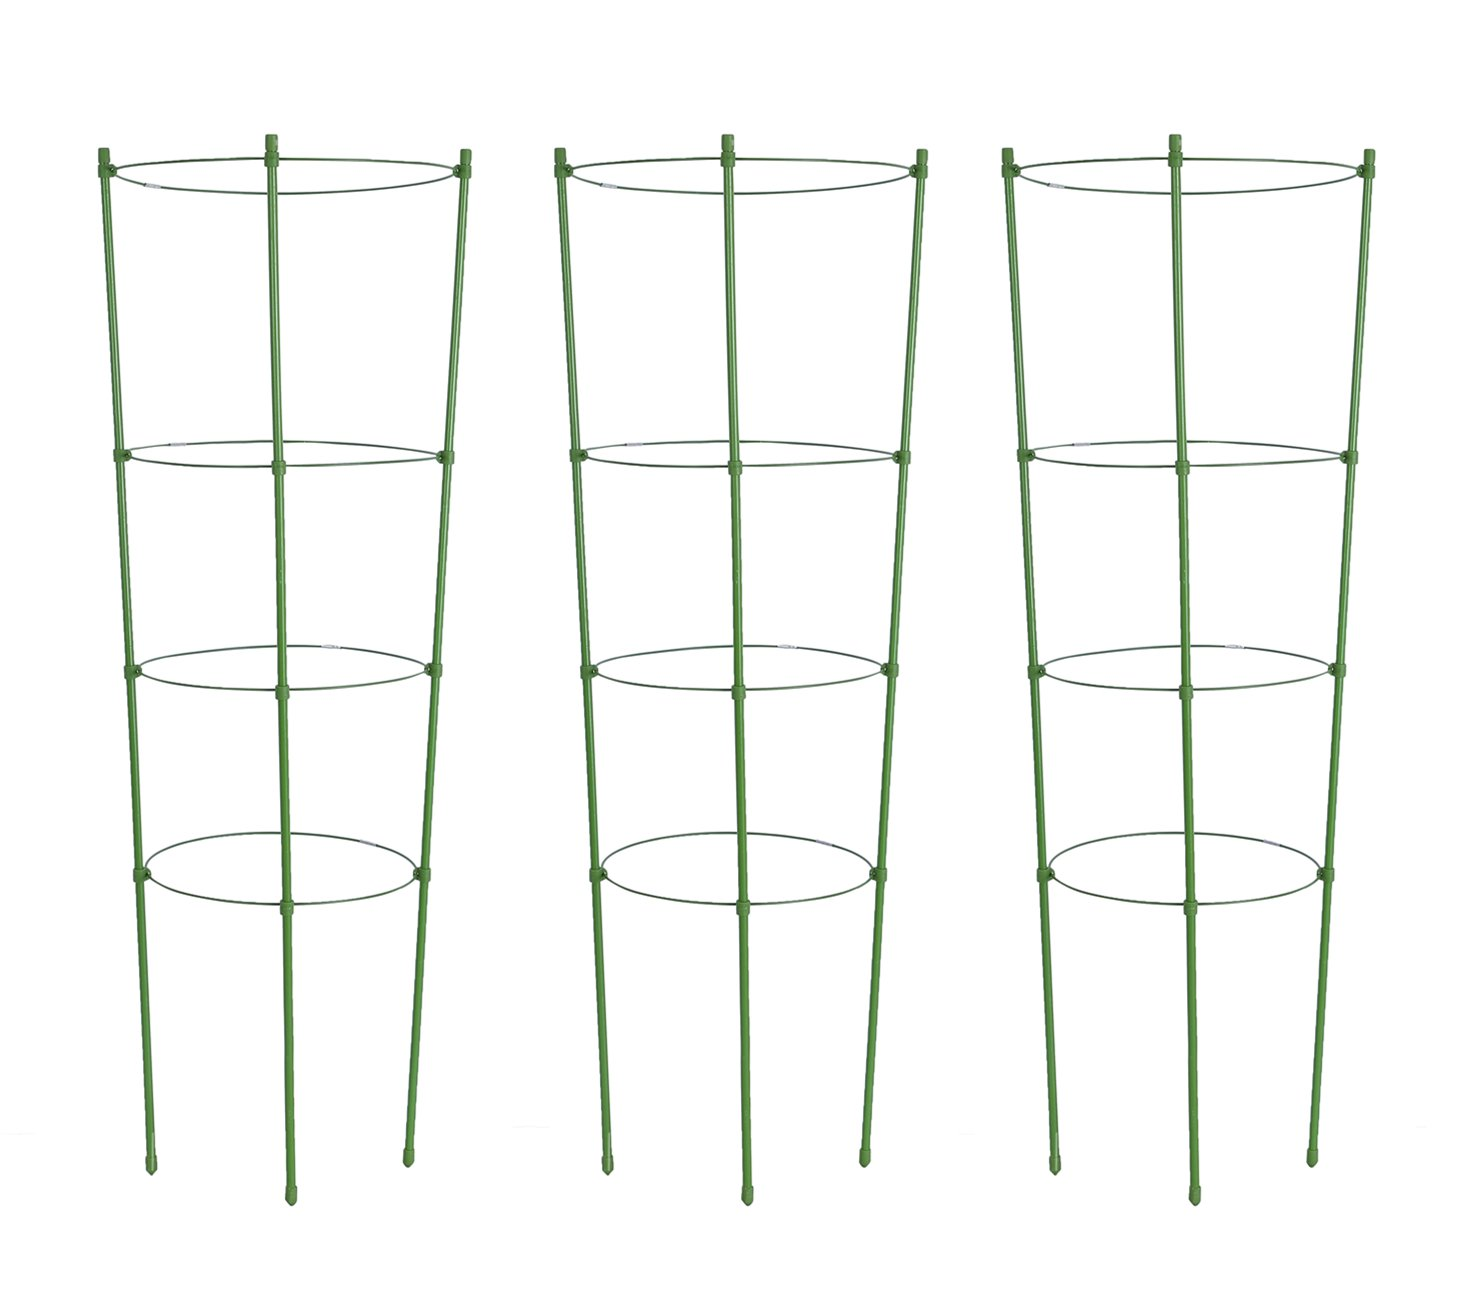 Tingyuan Plant Support Cages 36 Inches Plant Cages with 4 Adjustable Rings, Pack of 3